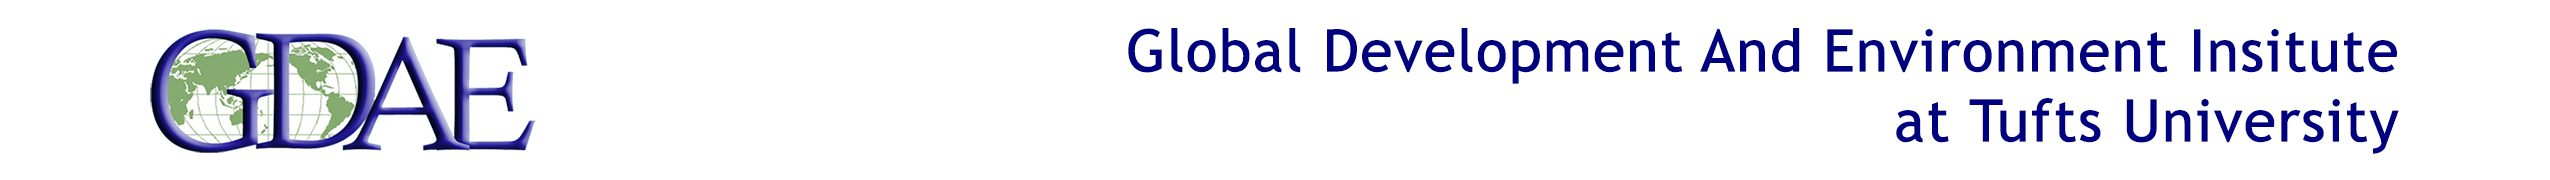 Global Development And Environment Institute